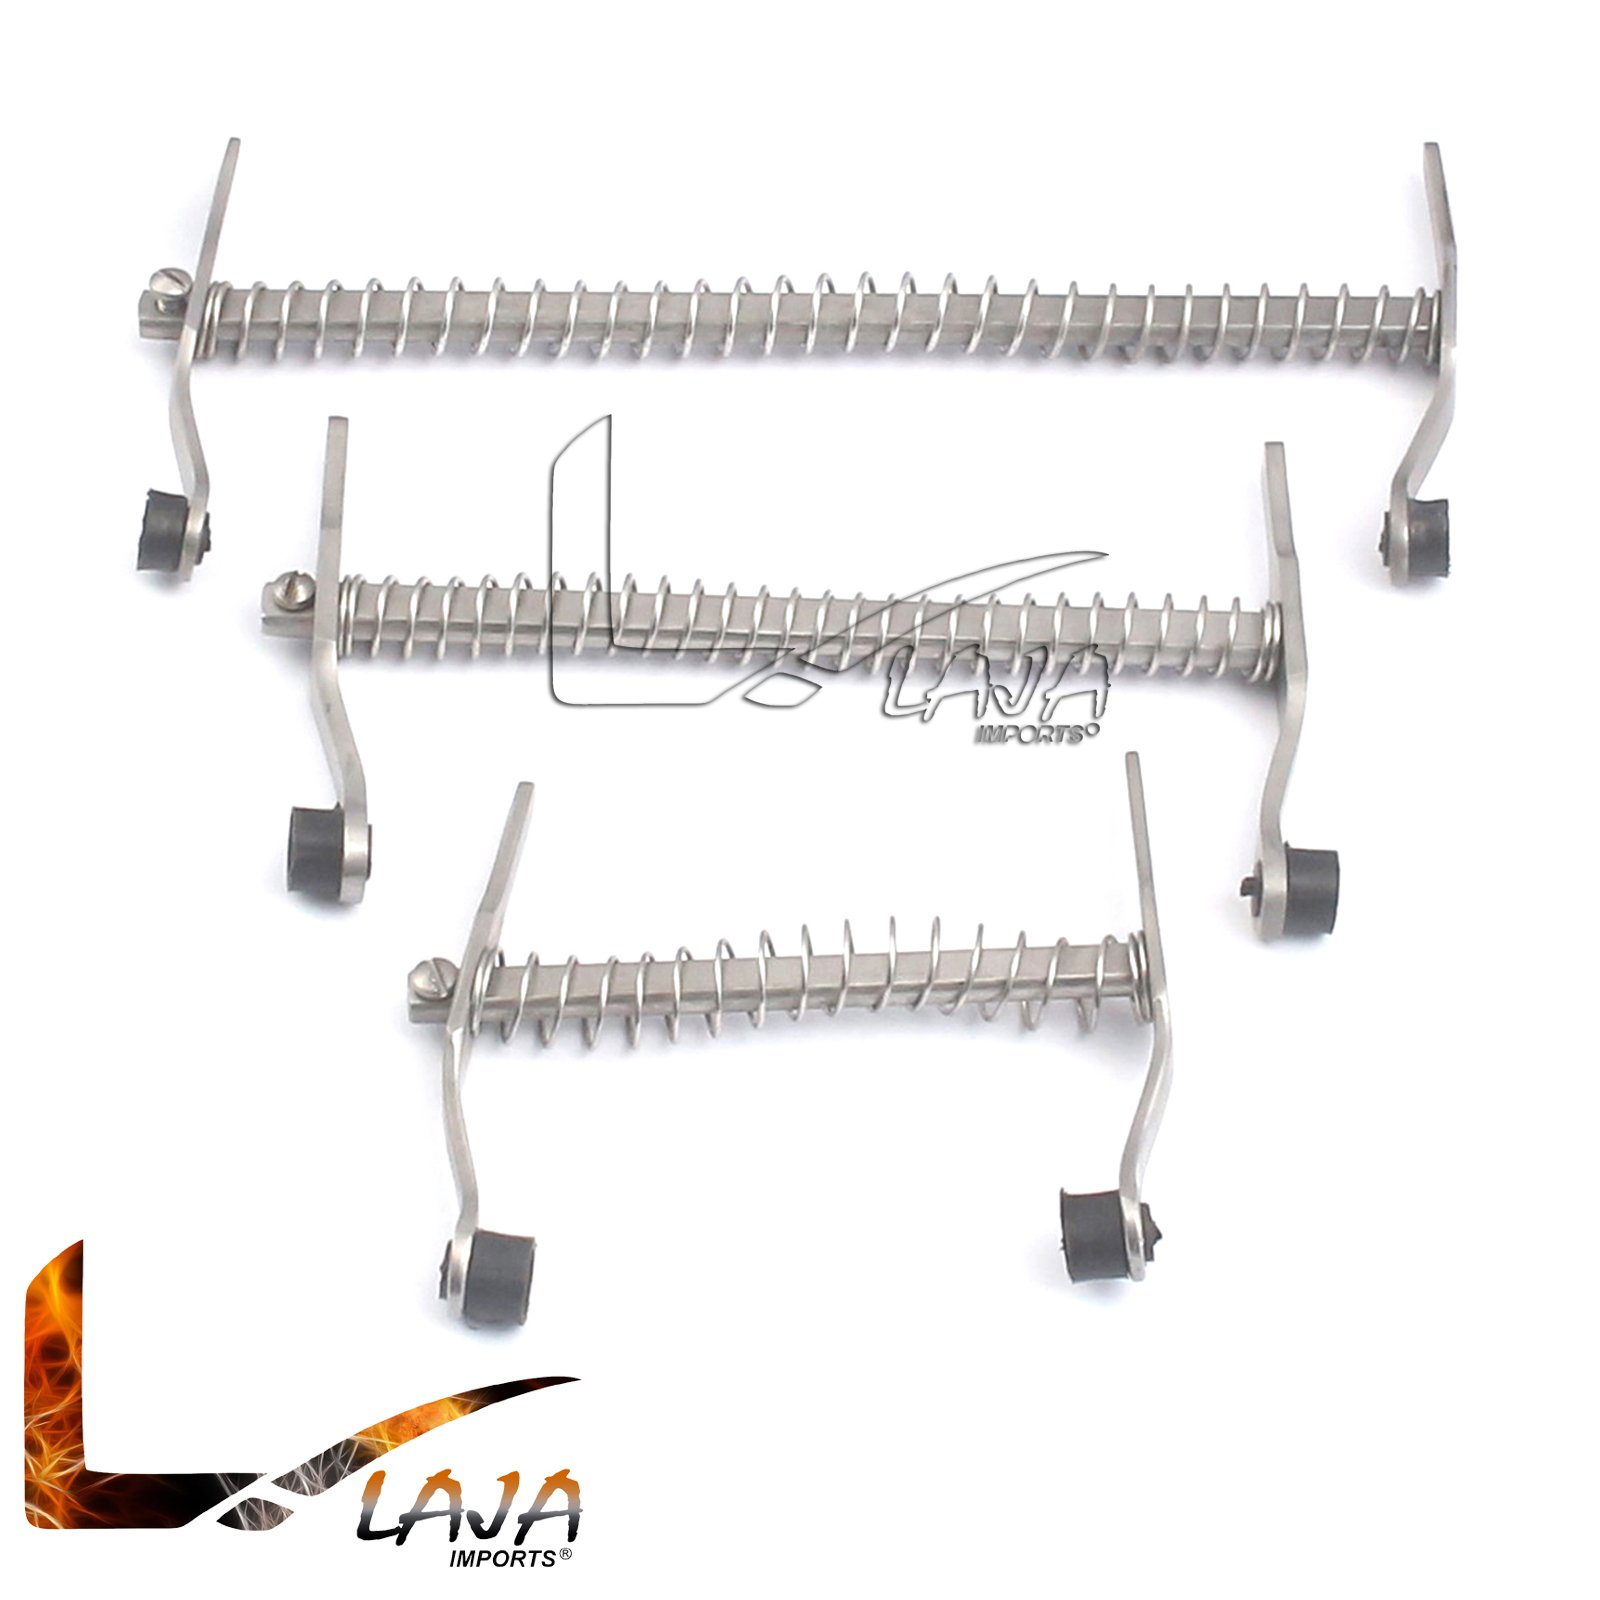 LAJA IMPORTS 3 CANINE MOUTH GAG VETERINARY INSTRUMENTS